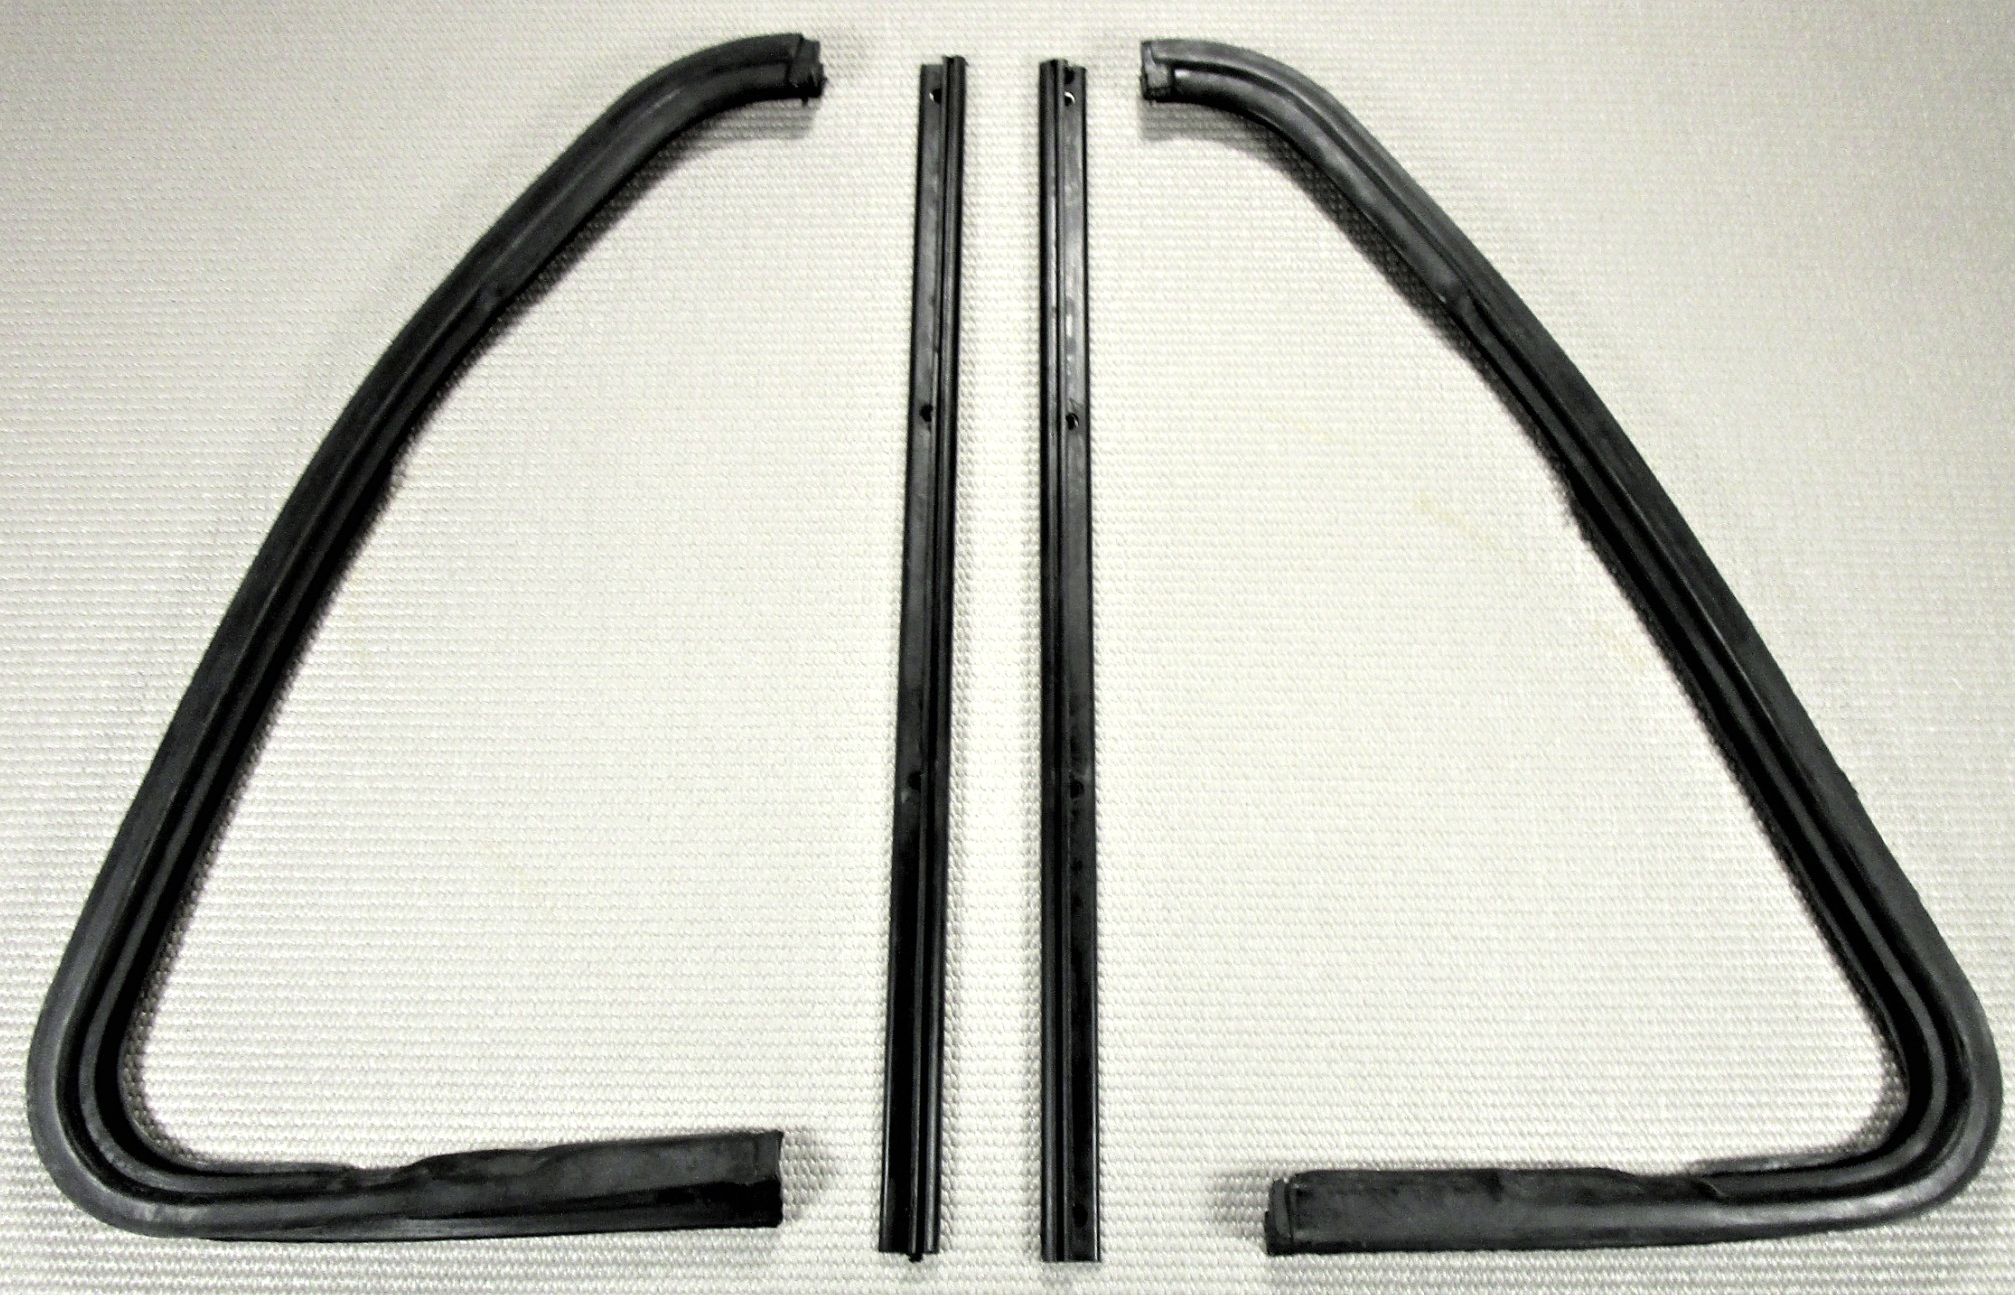 1964 1966 Chevrolet Gmc Pickup Truck Suburban Door Vent Window Rubber Seal Kit Ebay